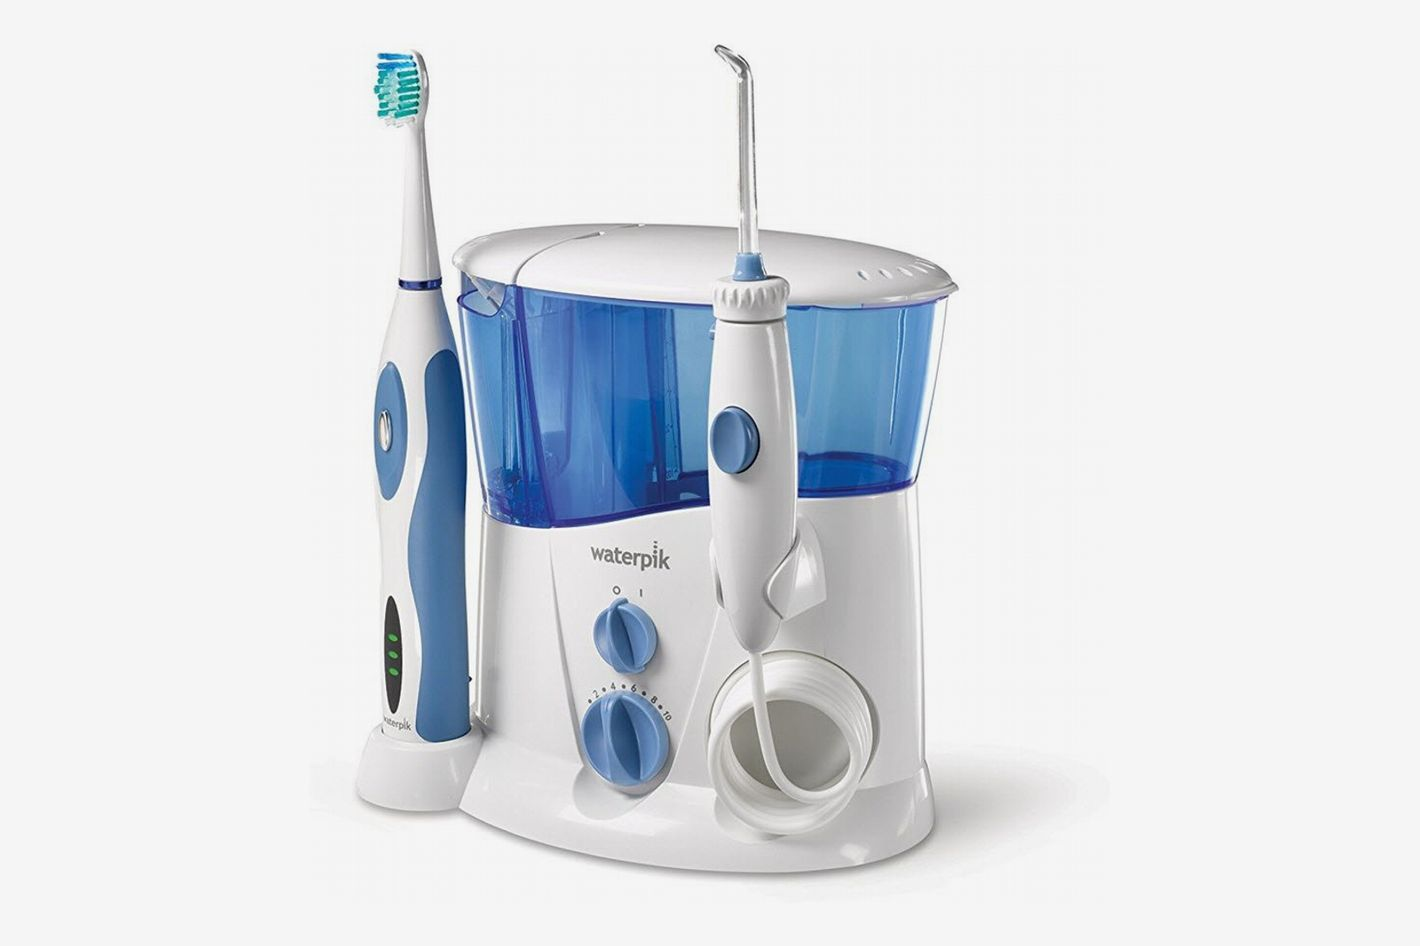 Waterpik Complete Care Water Flosser and Sonic Toothbrush